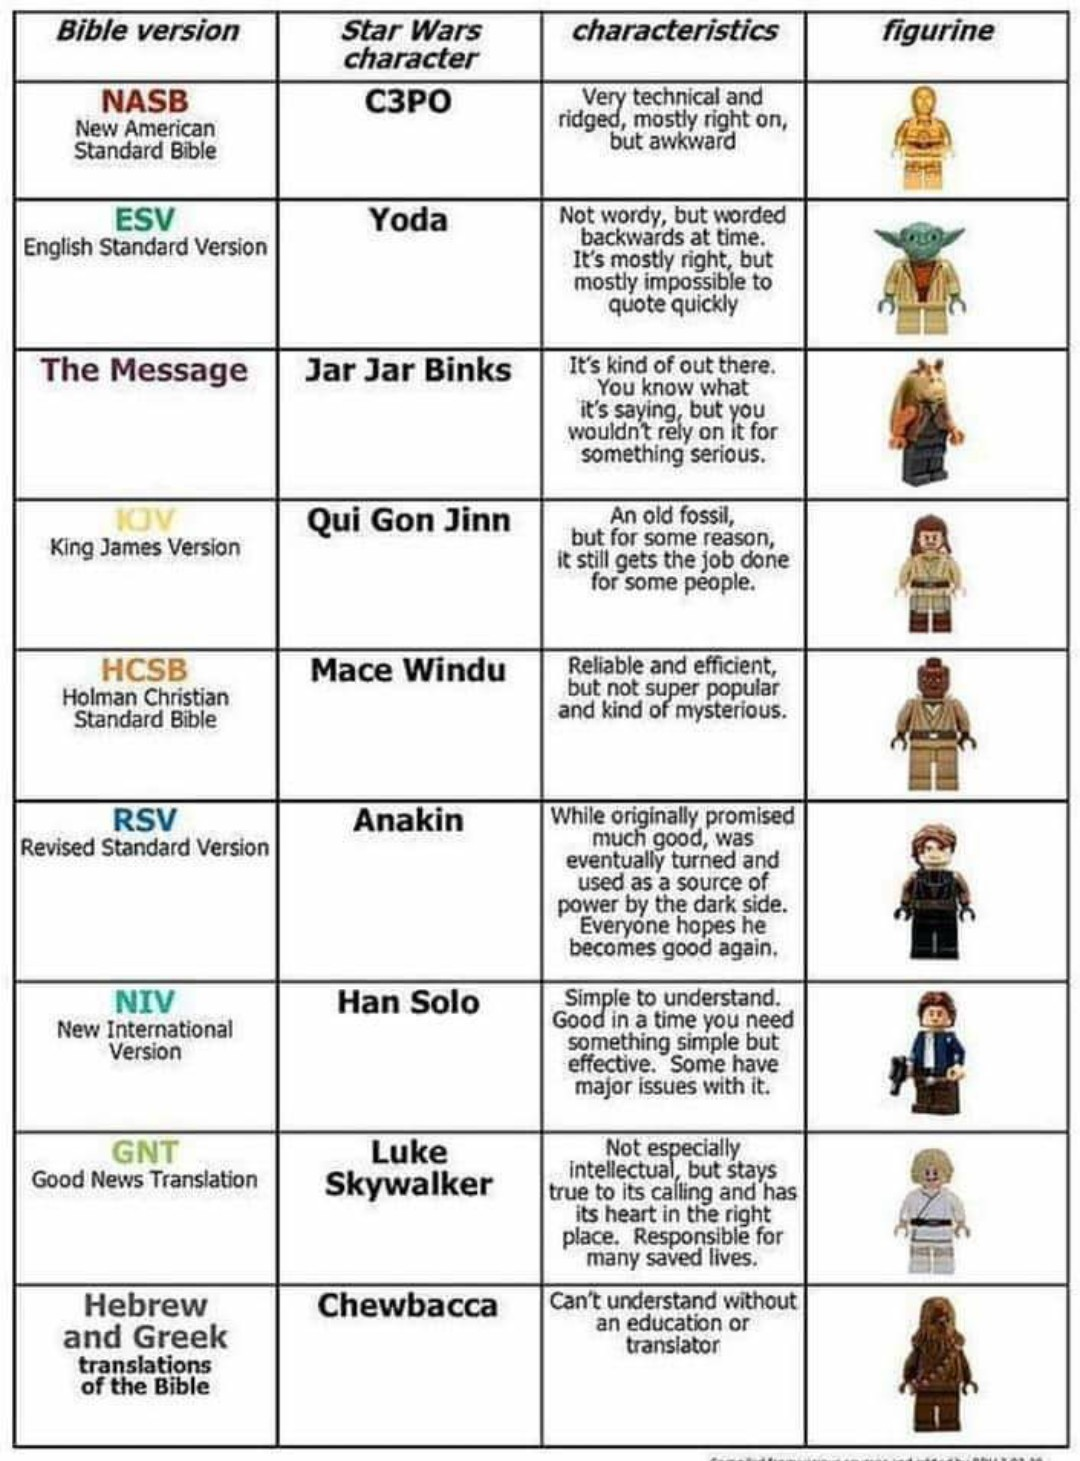 The bible translations as star wars characters - meme